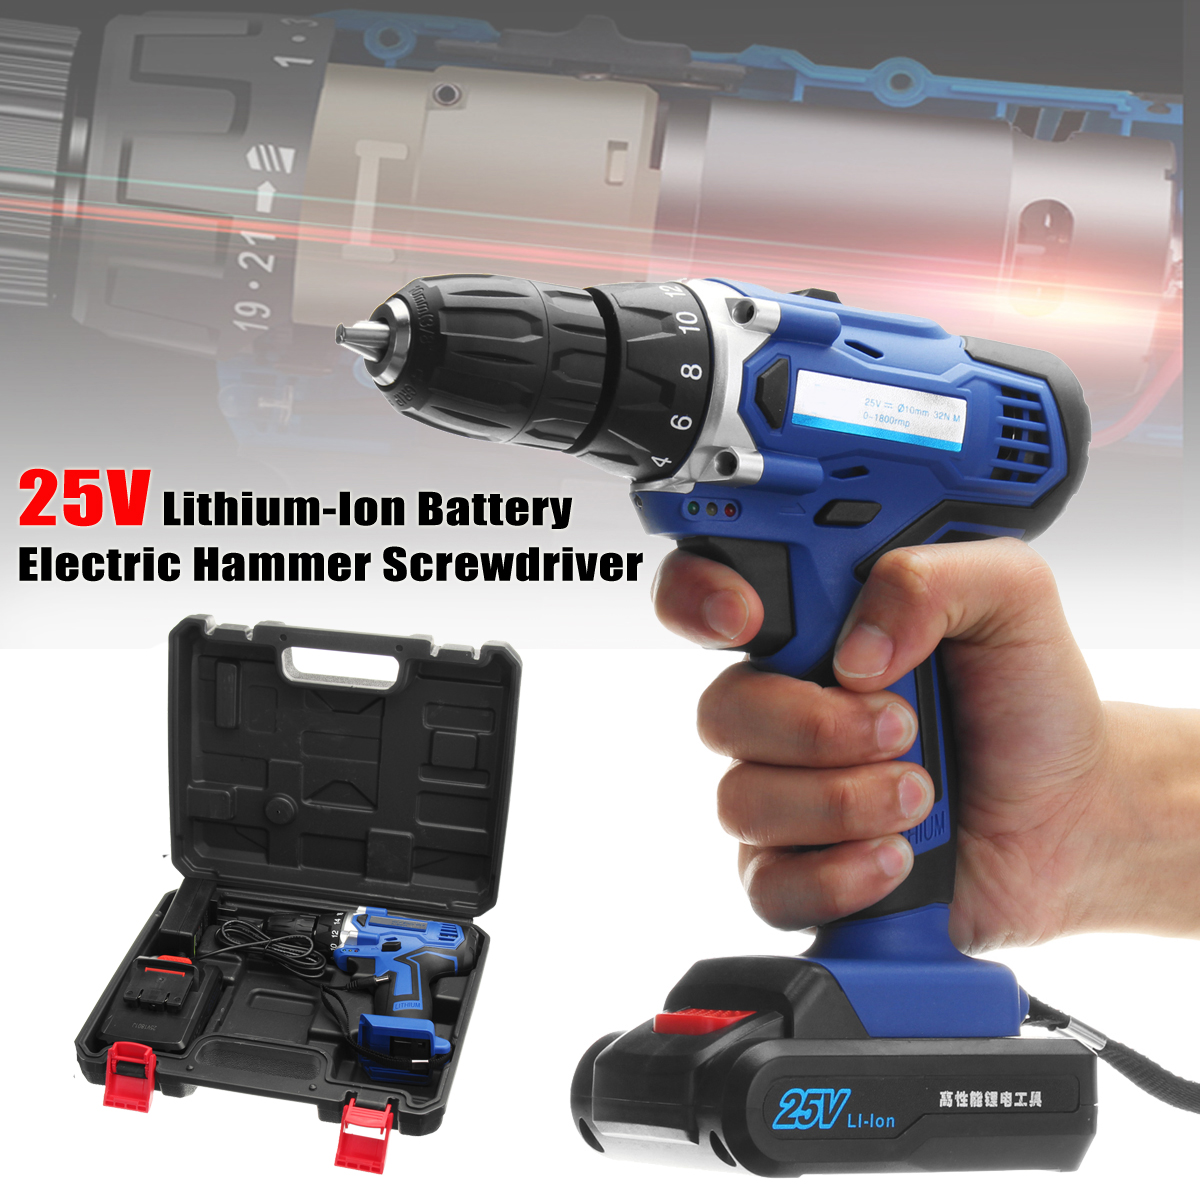 25V Lithium-Ion Battery Power Drill Driver Rechargeable Cordless Drill Electric Hammer Screwdriver